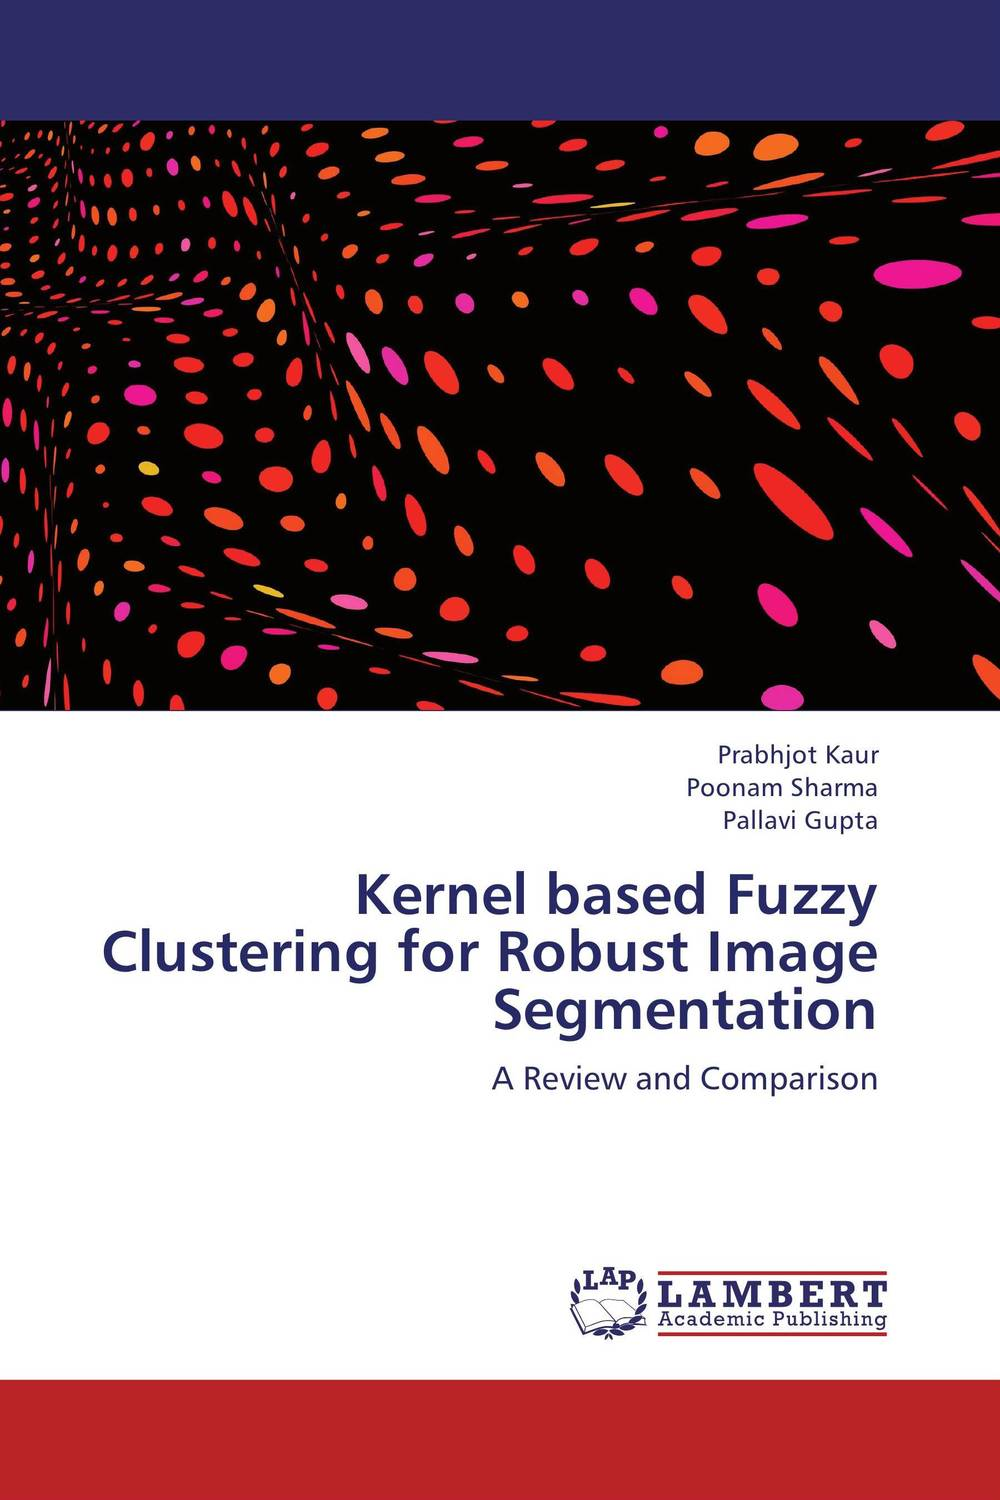 купить Kernel based Fuzzy Clustering for Robust Image Segmentation недорого